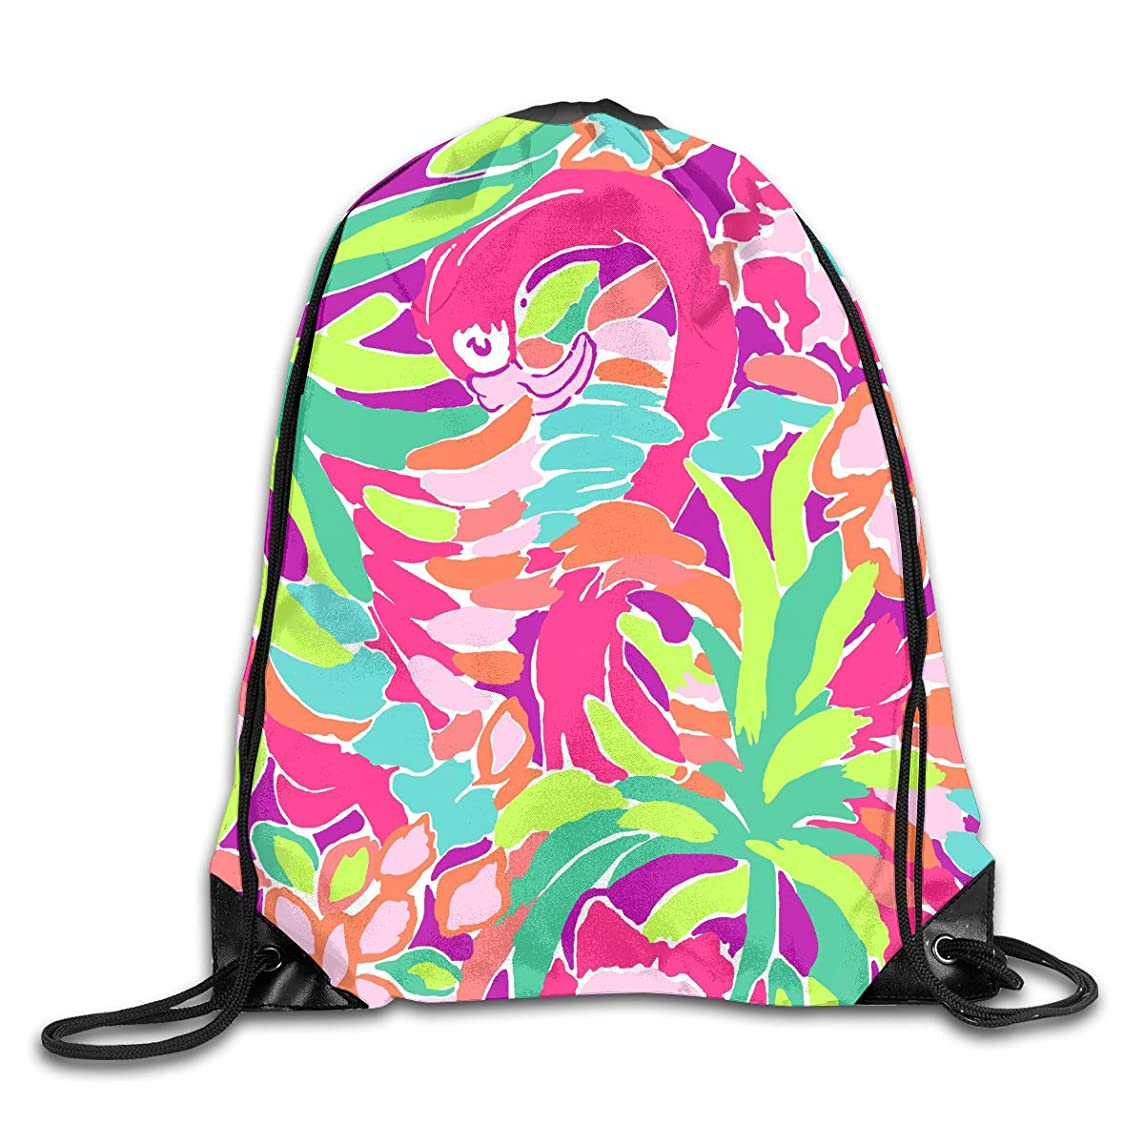 Lilly Pulitzer Cyber Monday Men & Women Sport Gym Sack Dancing Bag Drawstring Backpack For Beach Hiking Travel Bags